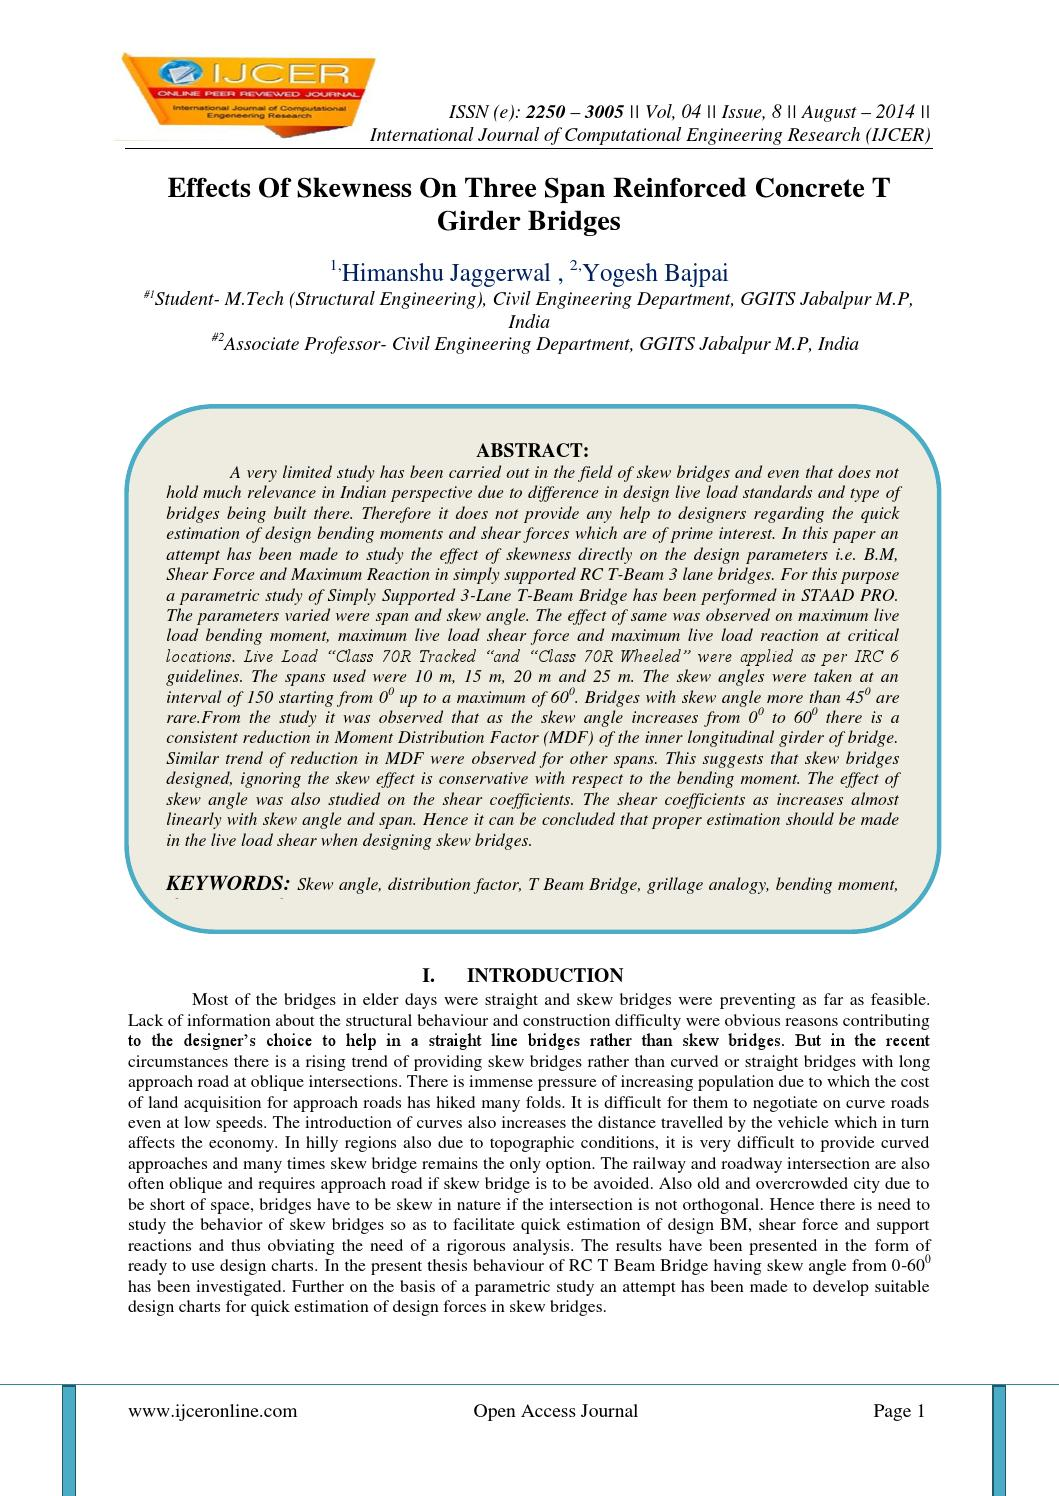 Effects Of Skewness On Three Span Reinforced Concrete T